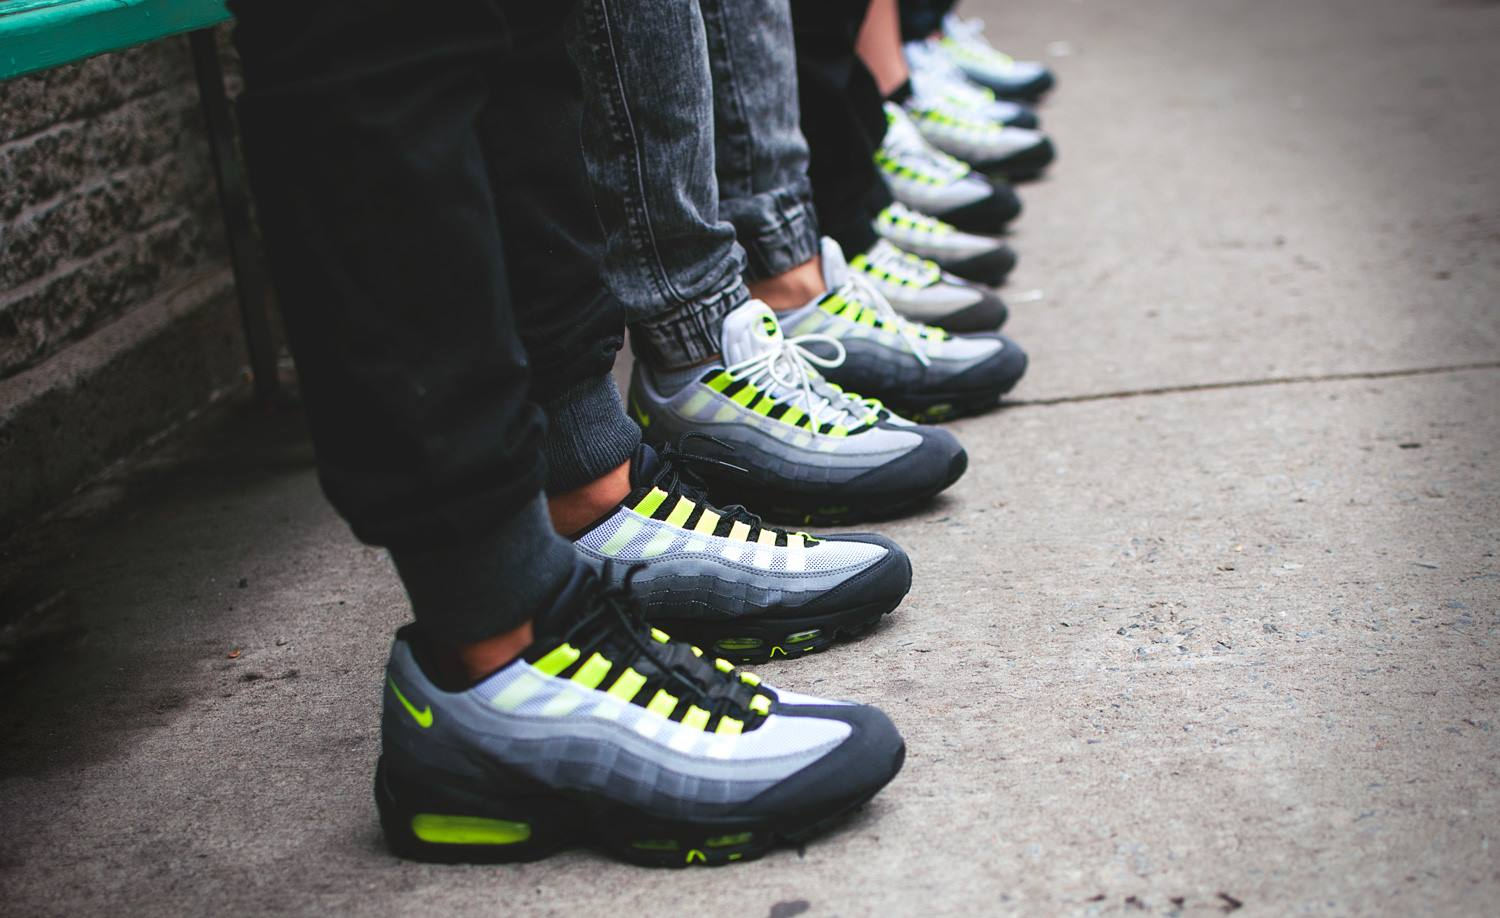 finest selection f1f42 a0552 Best Nike Air Max 95 s via Stadium Goods eBay — Grungy Gentleman